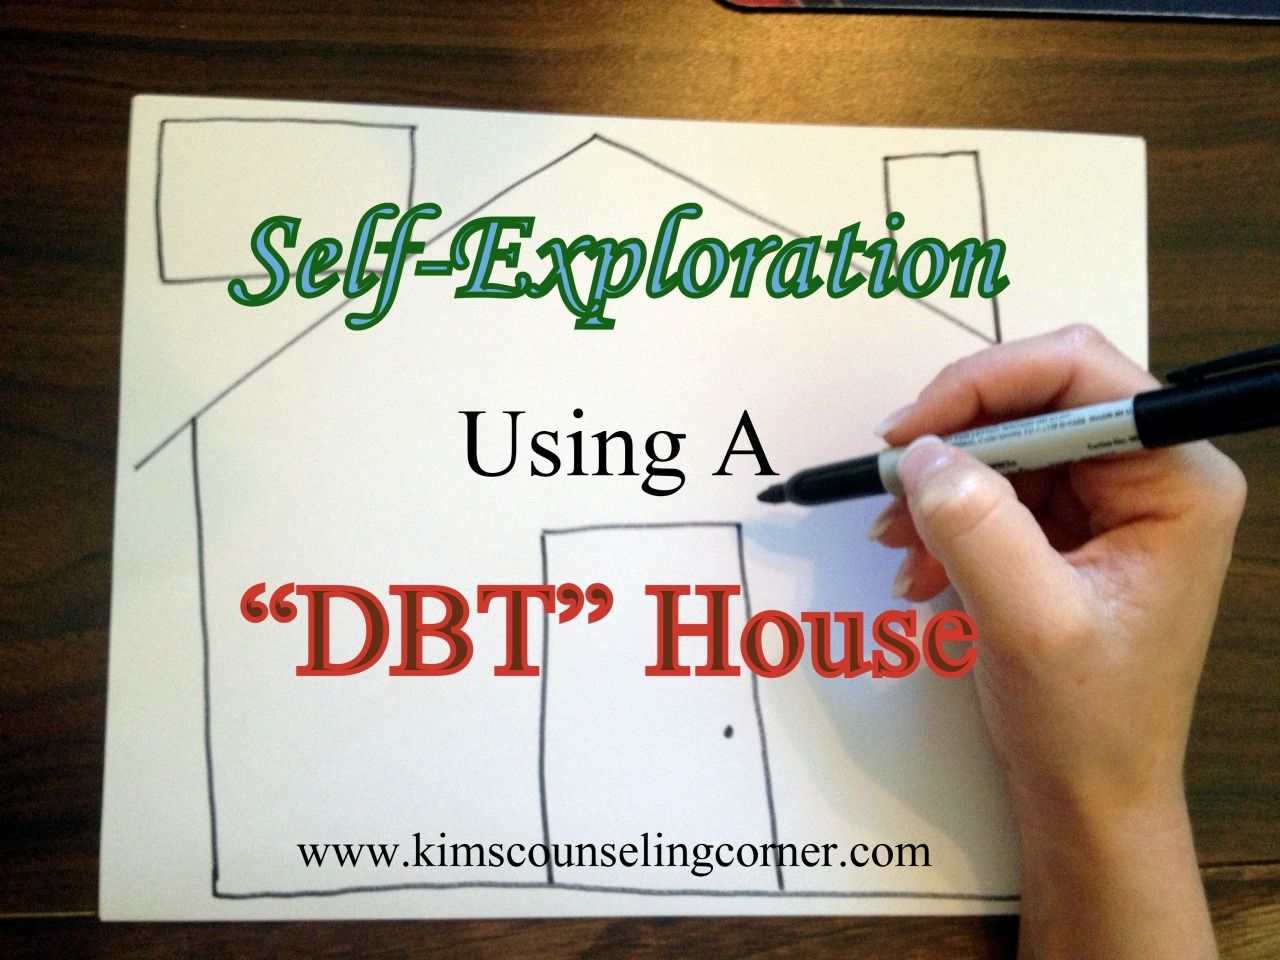 Dialectical behavioral therapy dbt house instructions from kim dialectical behavioral therapy dbt house instructions from kim creating your house template fandeluxe Image collections